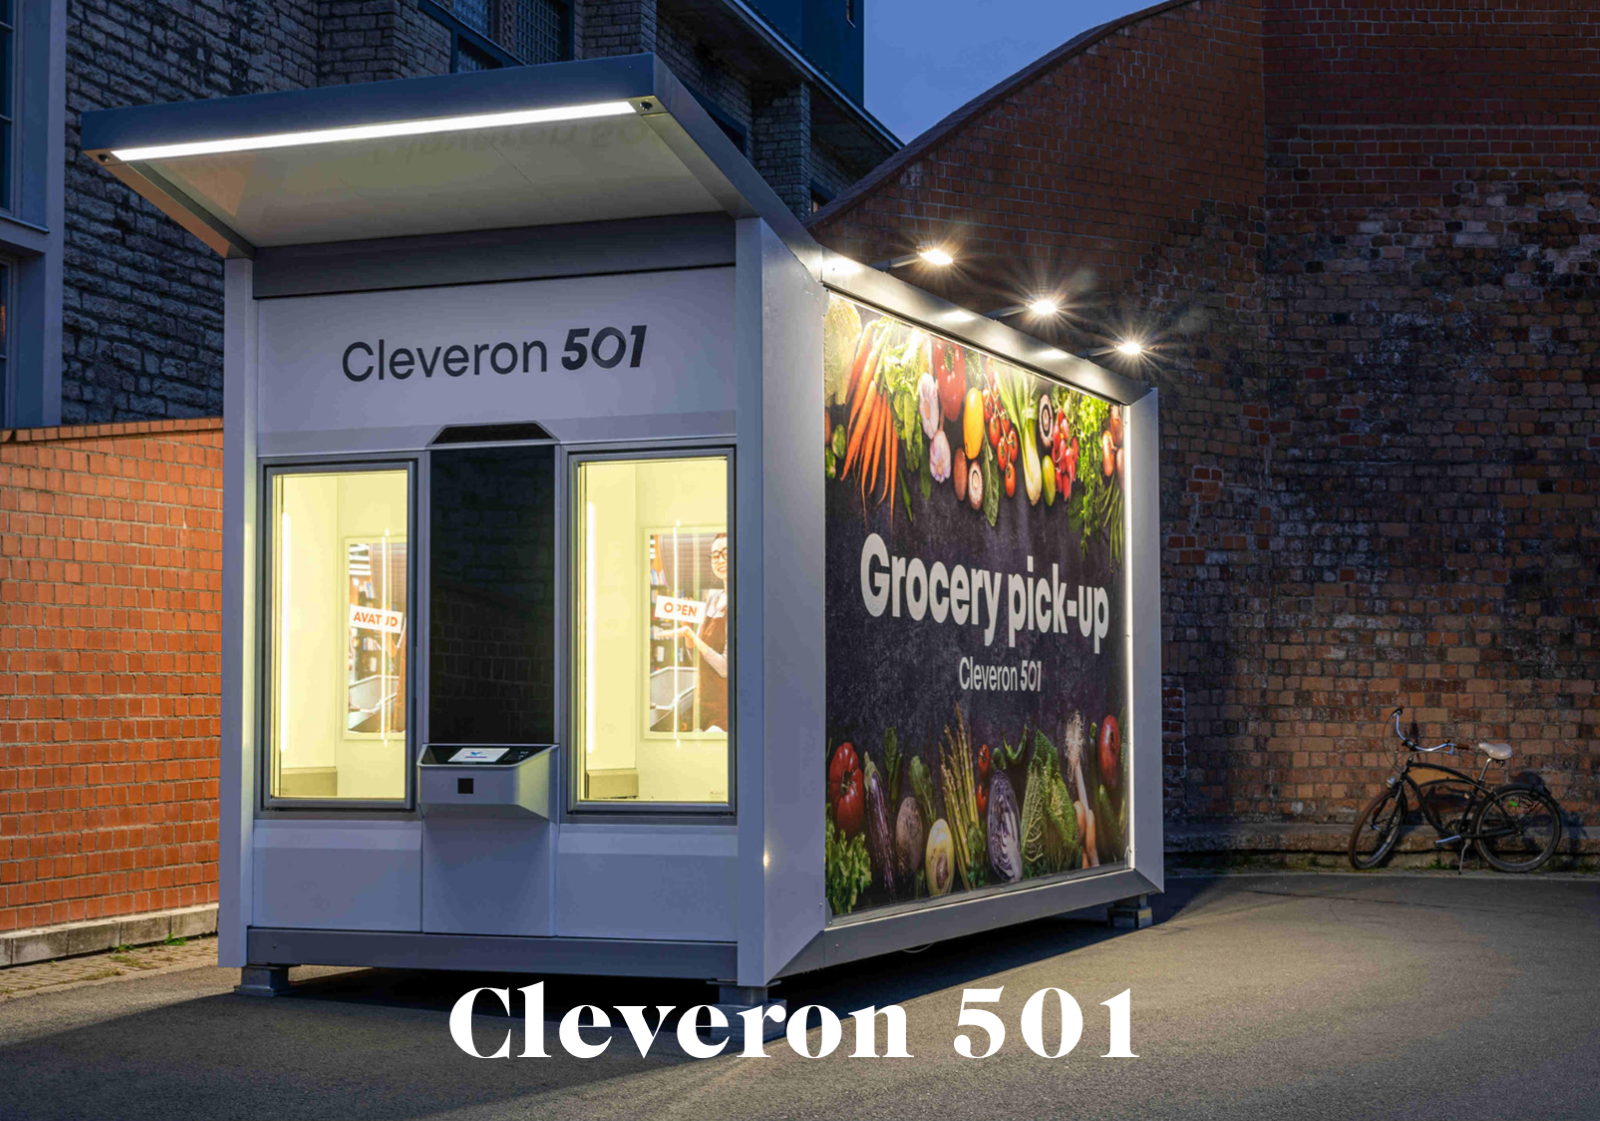 cleveron-501